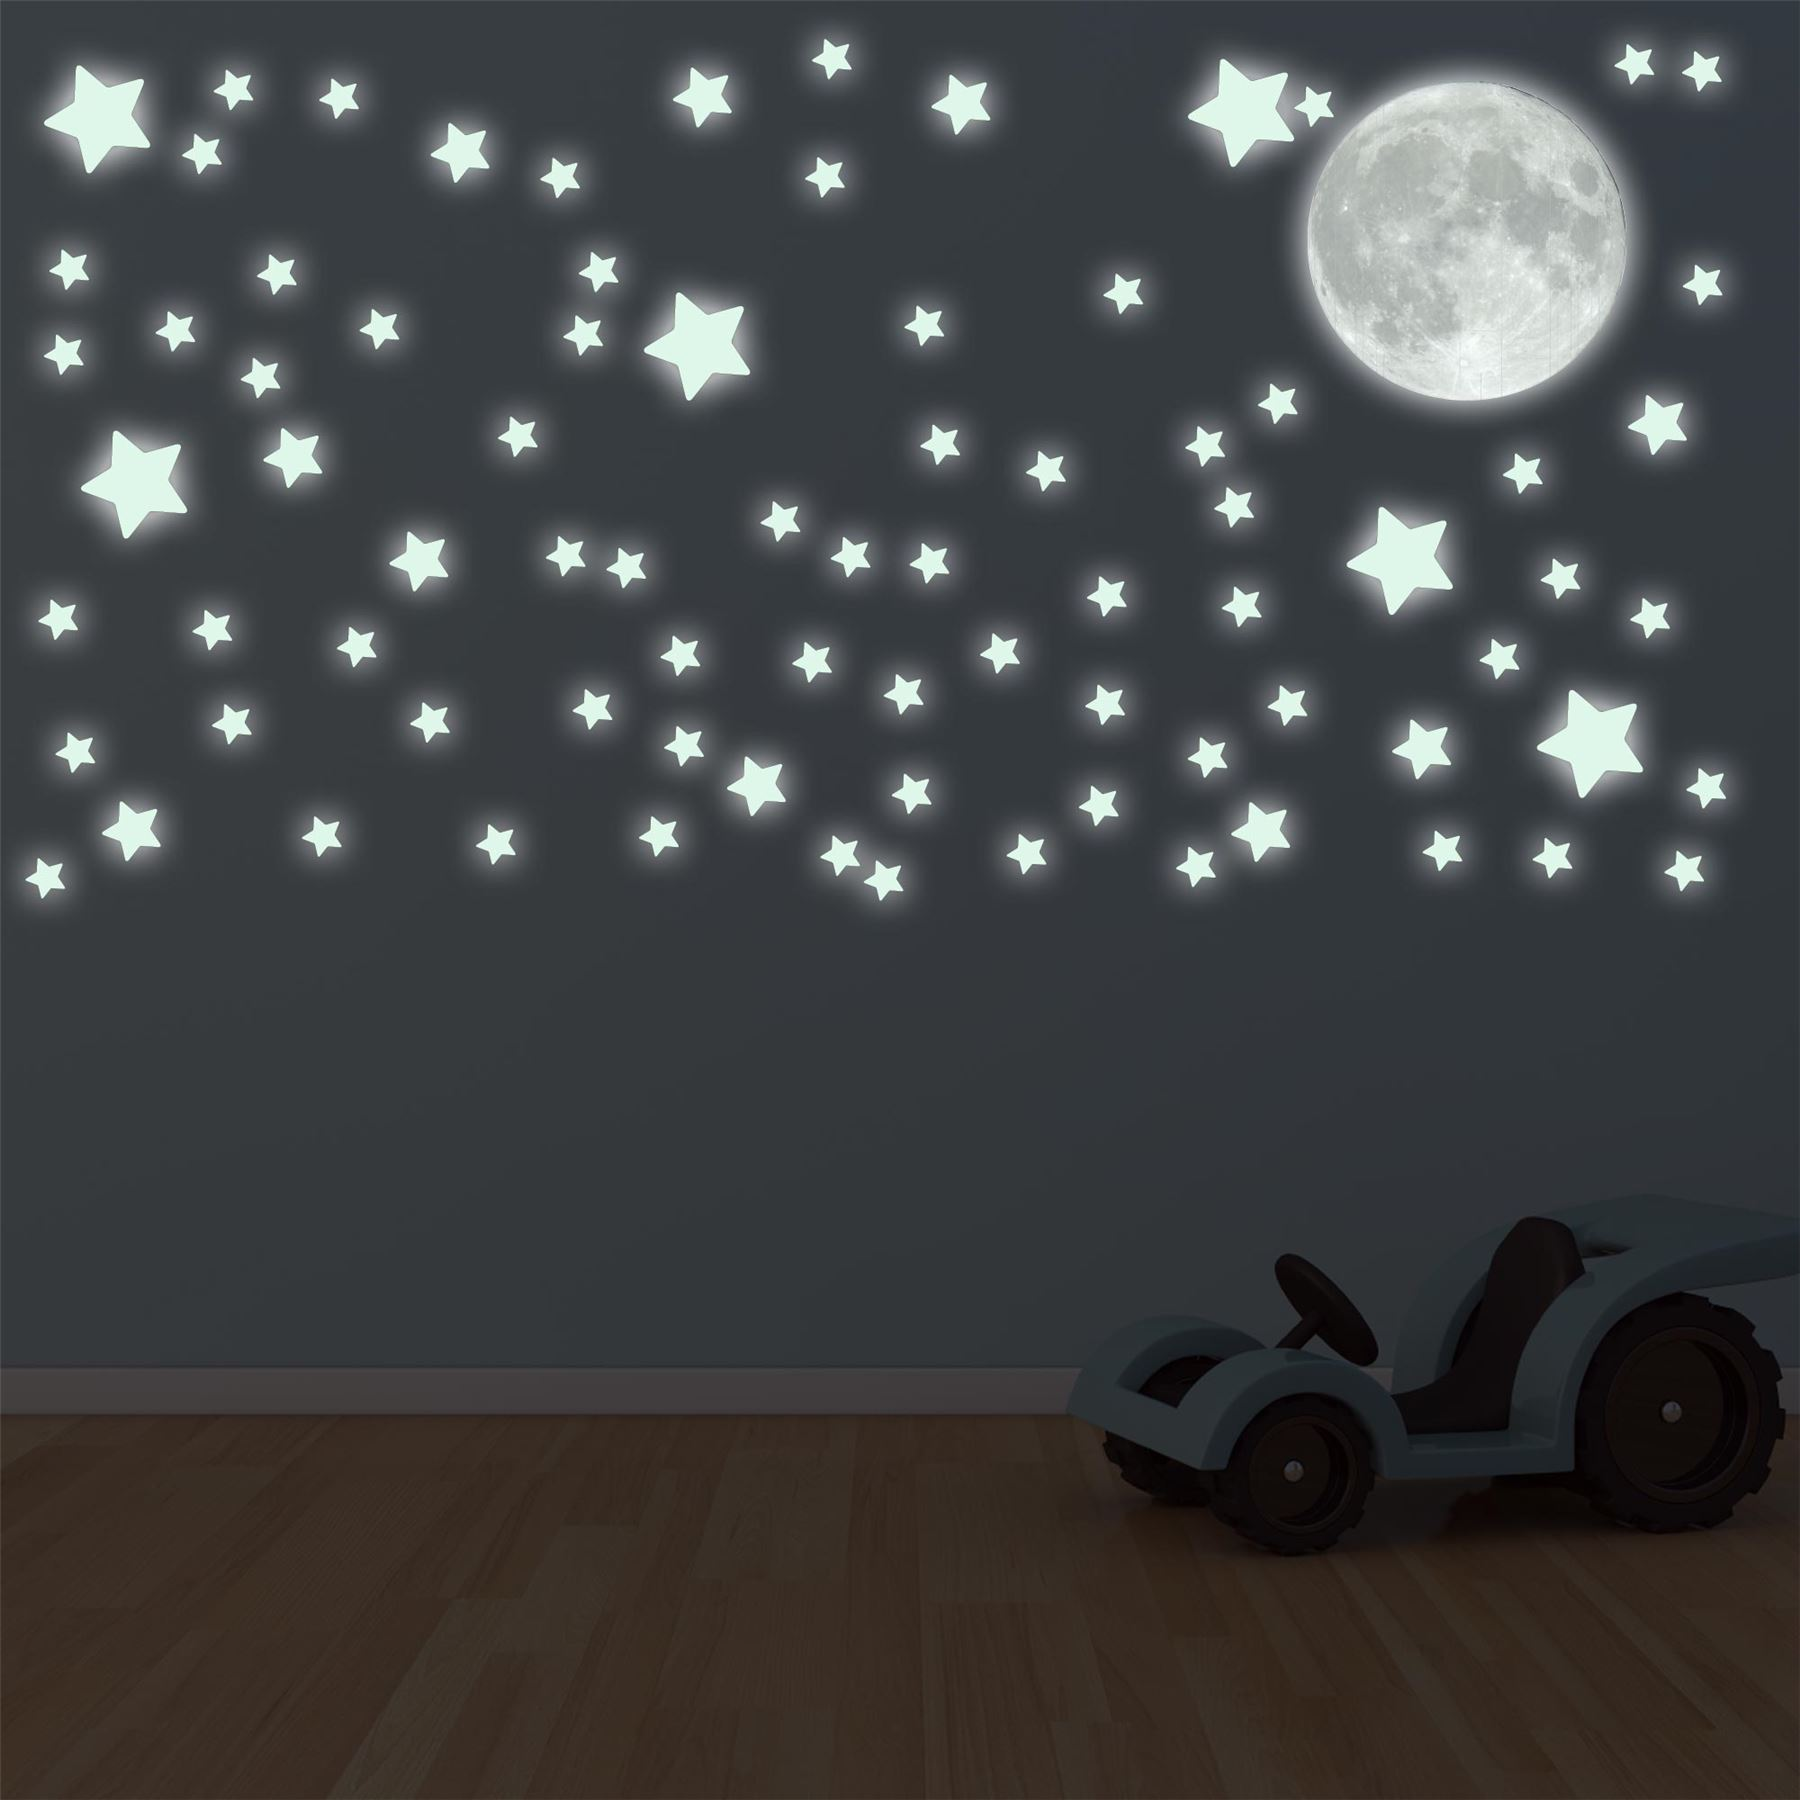 glow in the dark moon and stars wall sticker decal ebay. Black Bedroom Furniture Sets. Home Design Ideas